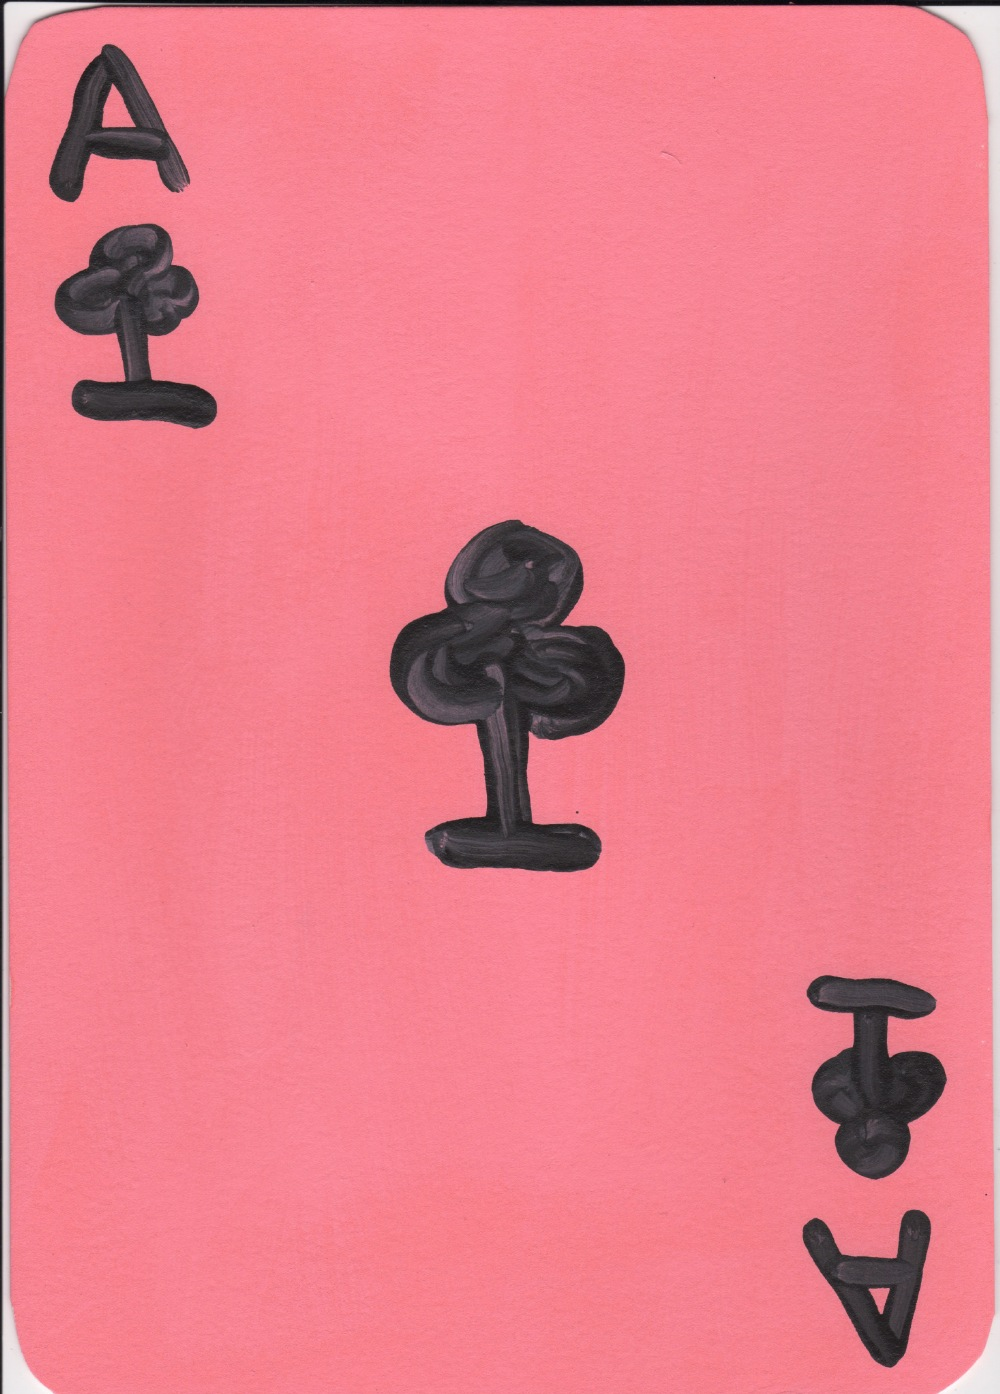 David Shrigley OBE (British, b.1968). 'Ace of Clubs'. Paint on card, signed 'D.Shrig' and dated